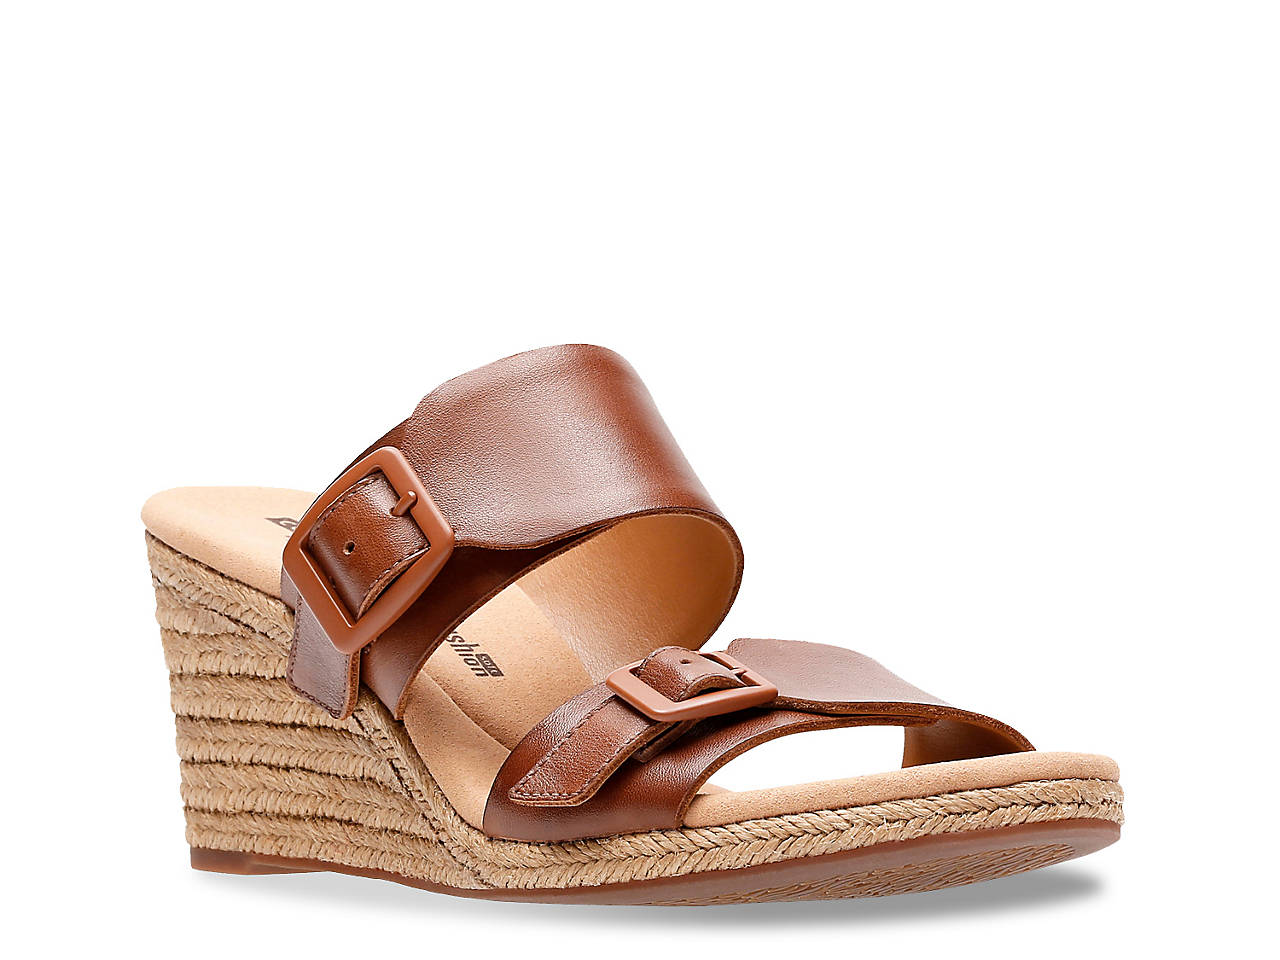 6dc5acb87264 Clarks Lafley Devin Espadrille Wedge Sandal Women s Shoes